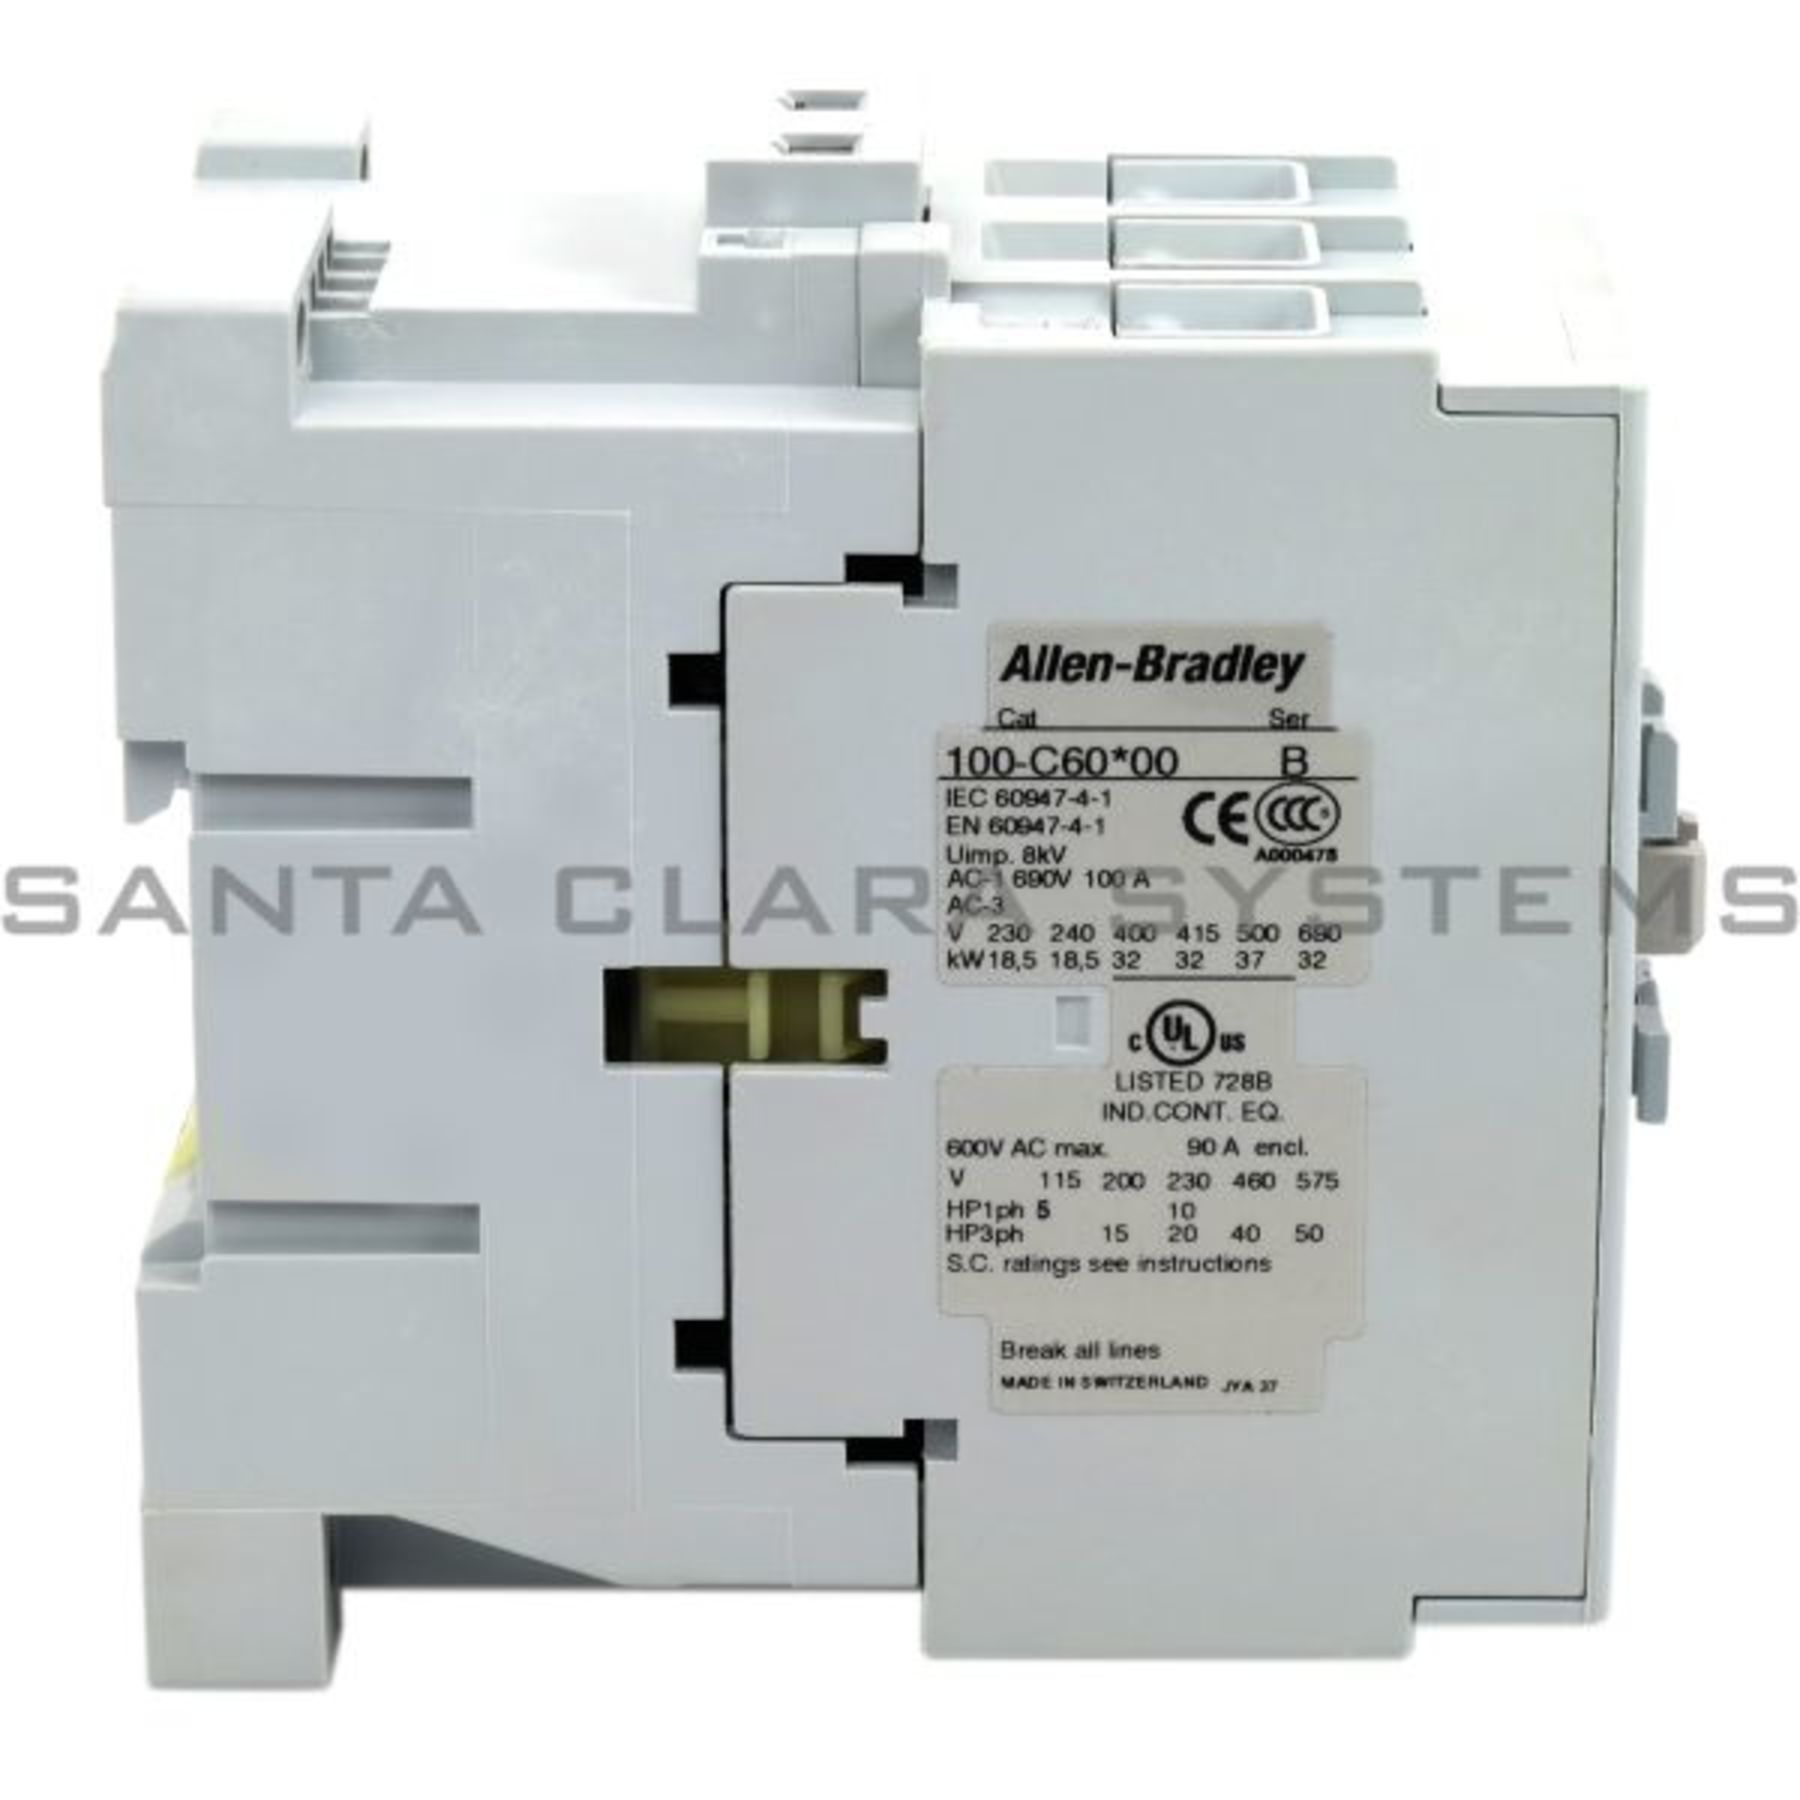 100-C60K00 Allen Bradley In stock and ready to ship - Santa